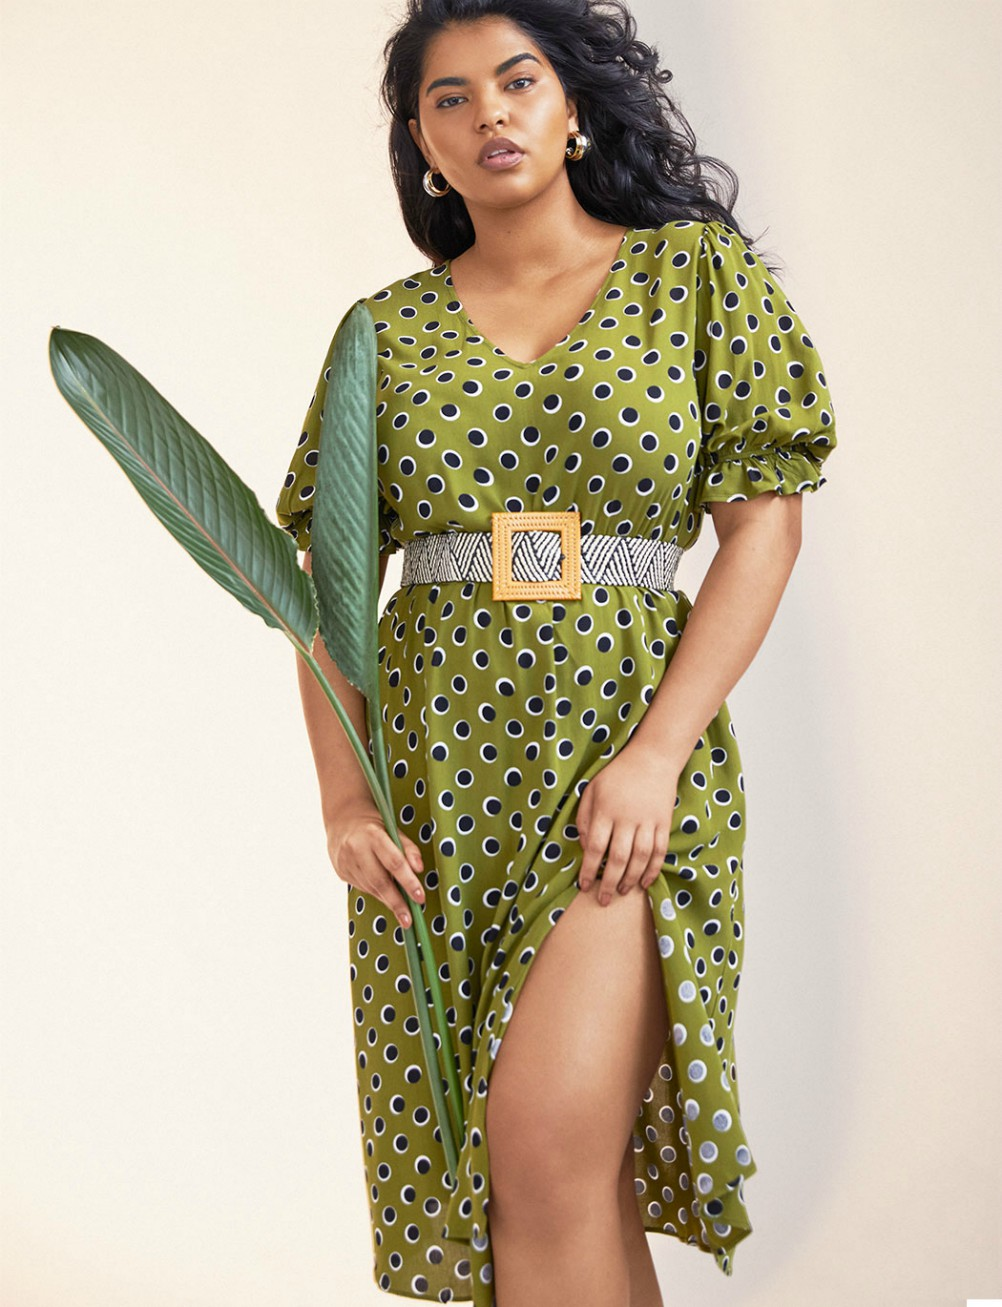 Plus-size fashion retailer Eloquii launched its own rental subscription service through CaaStle, giving women size 14-28 a range of choices.